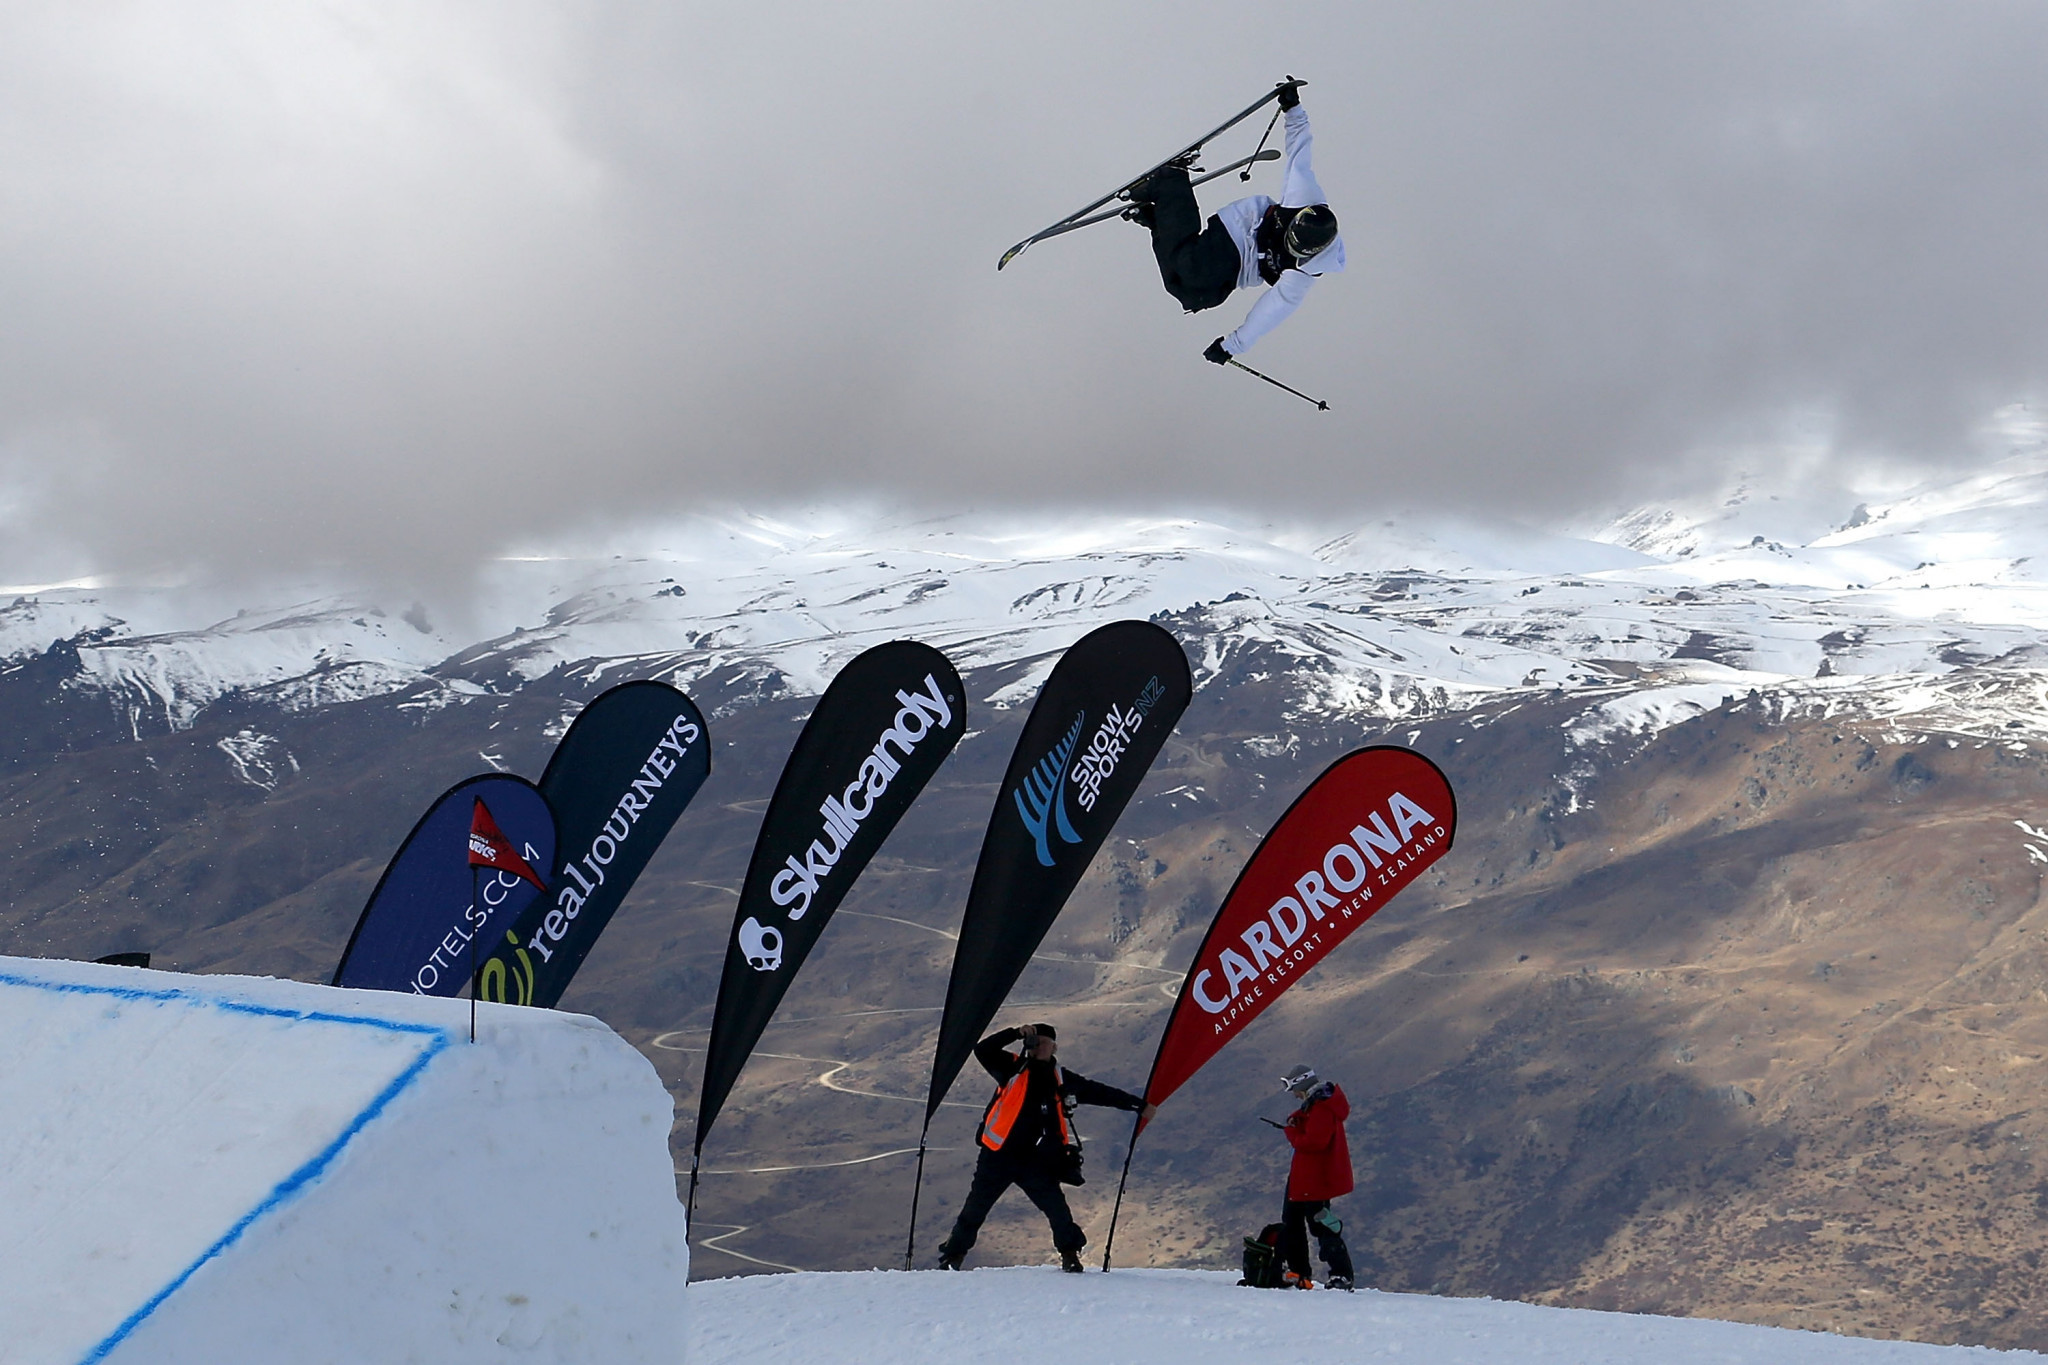 Ryan Wyble's new role as United States freeski team national development coach for slopestyle and big air,will focus on working on the development of rookie team athletes an bringing them through to the pro team level ©Getty Images